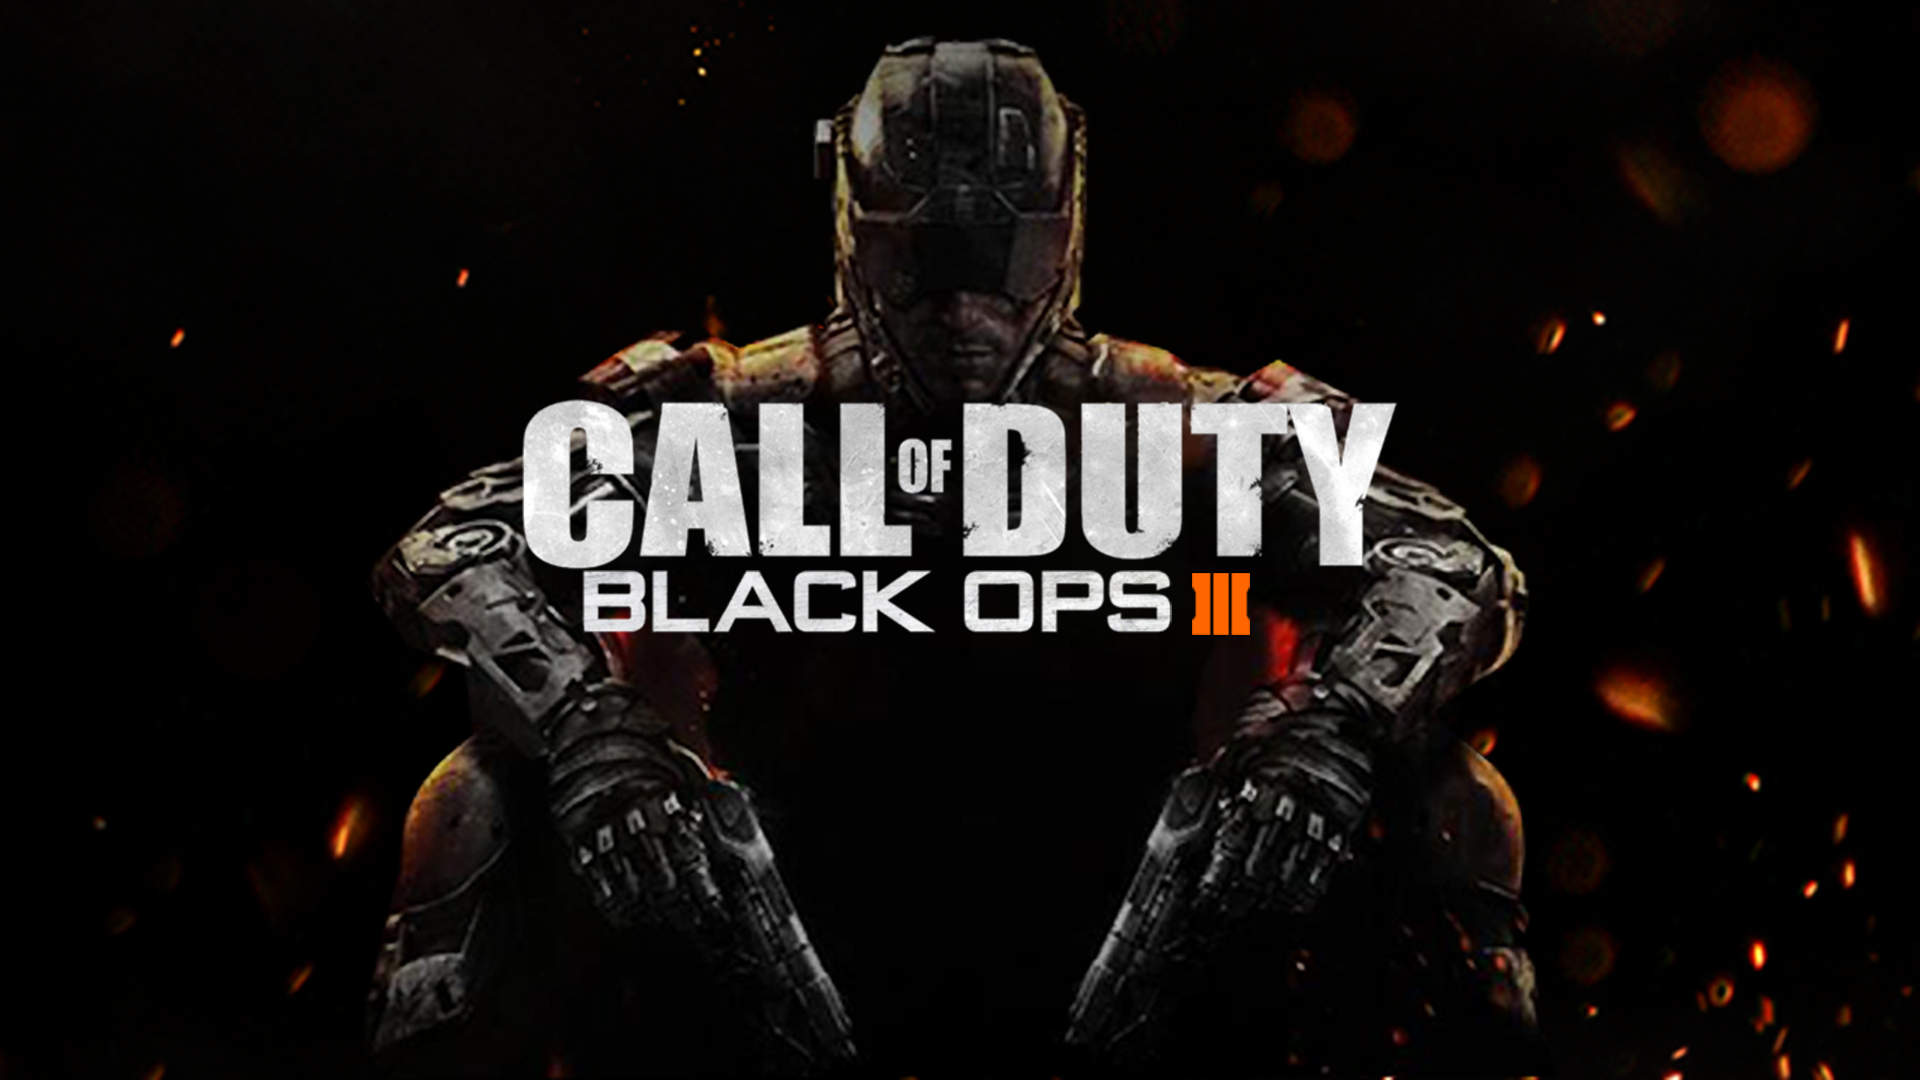 Call Of Duty Black Ops 3 Wallpapers Top Free Call Of Duty Black